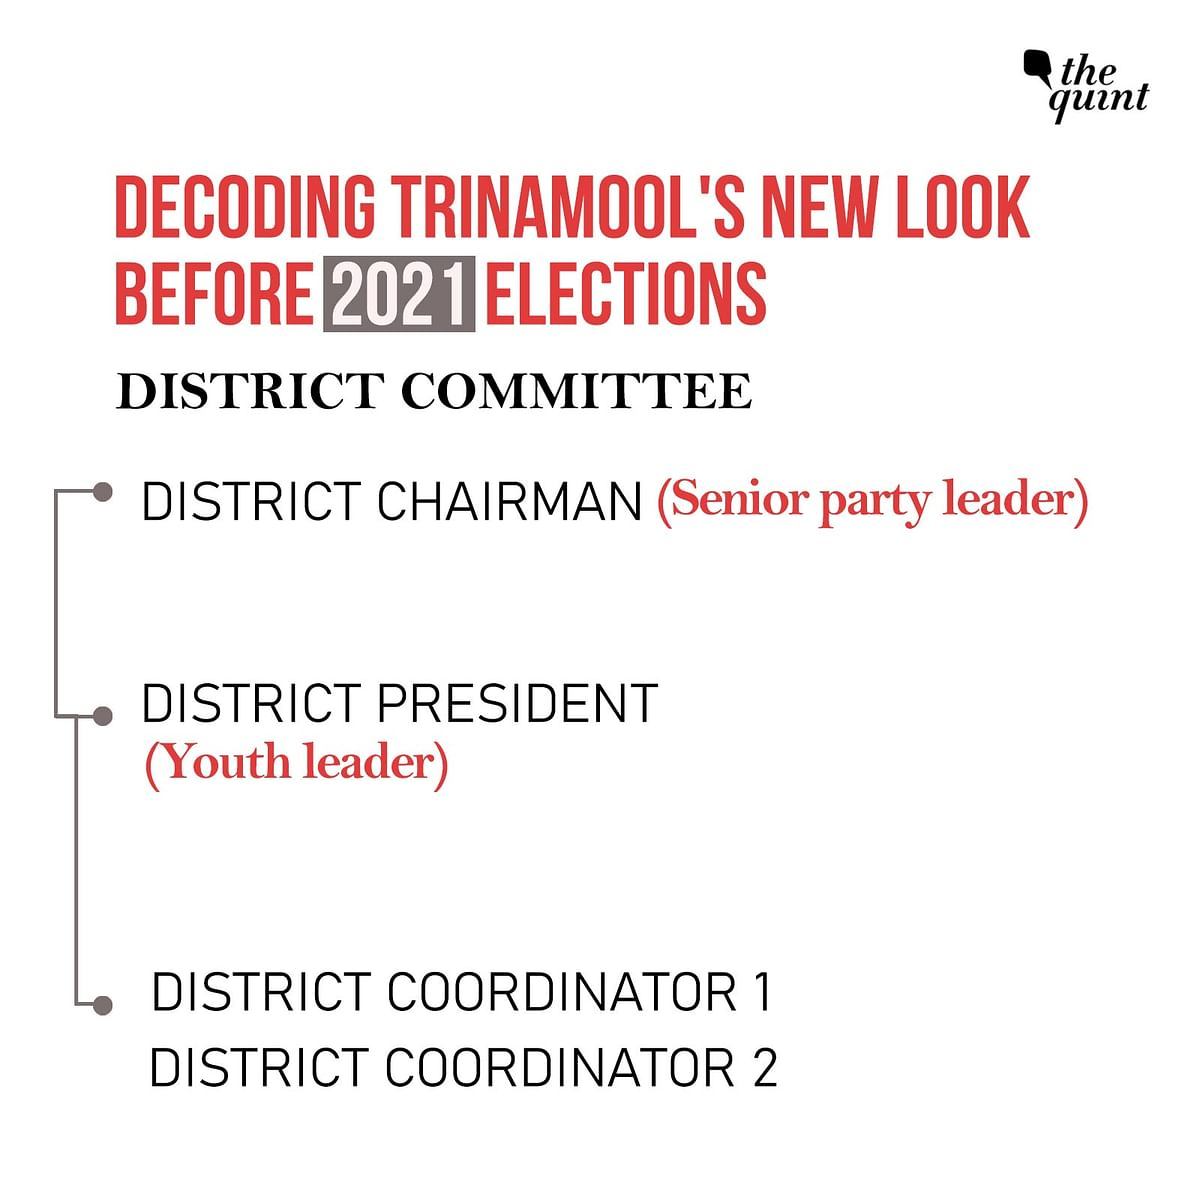 The district committee has the chairman at the top, followed by the district president.